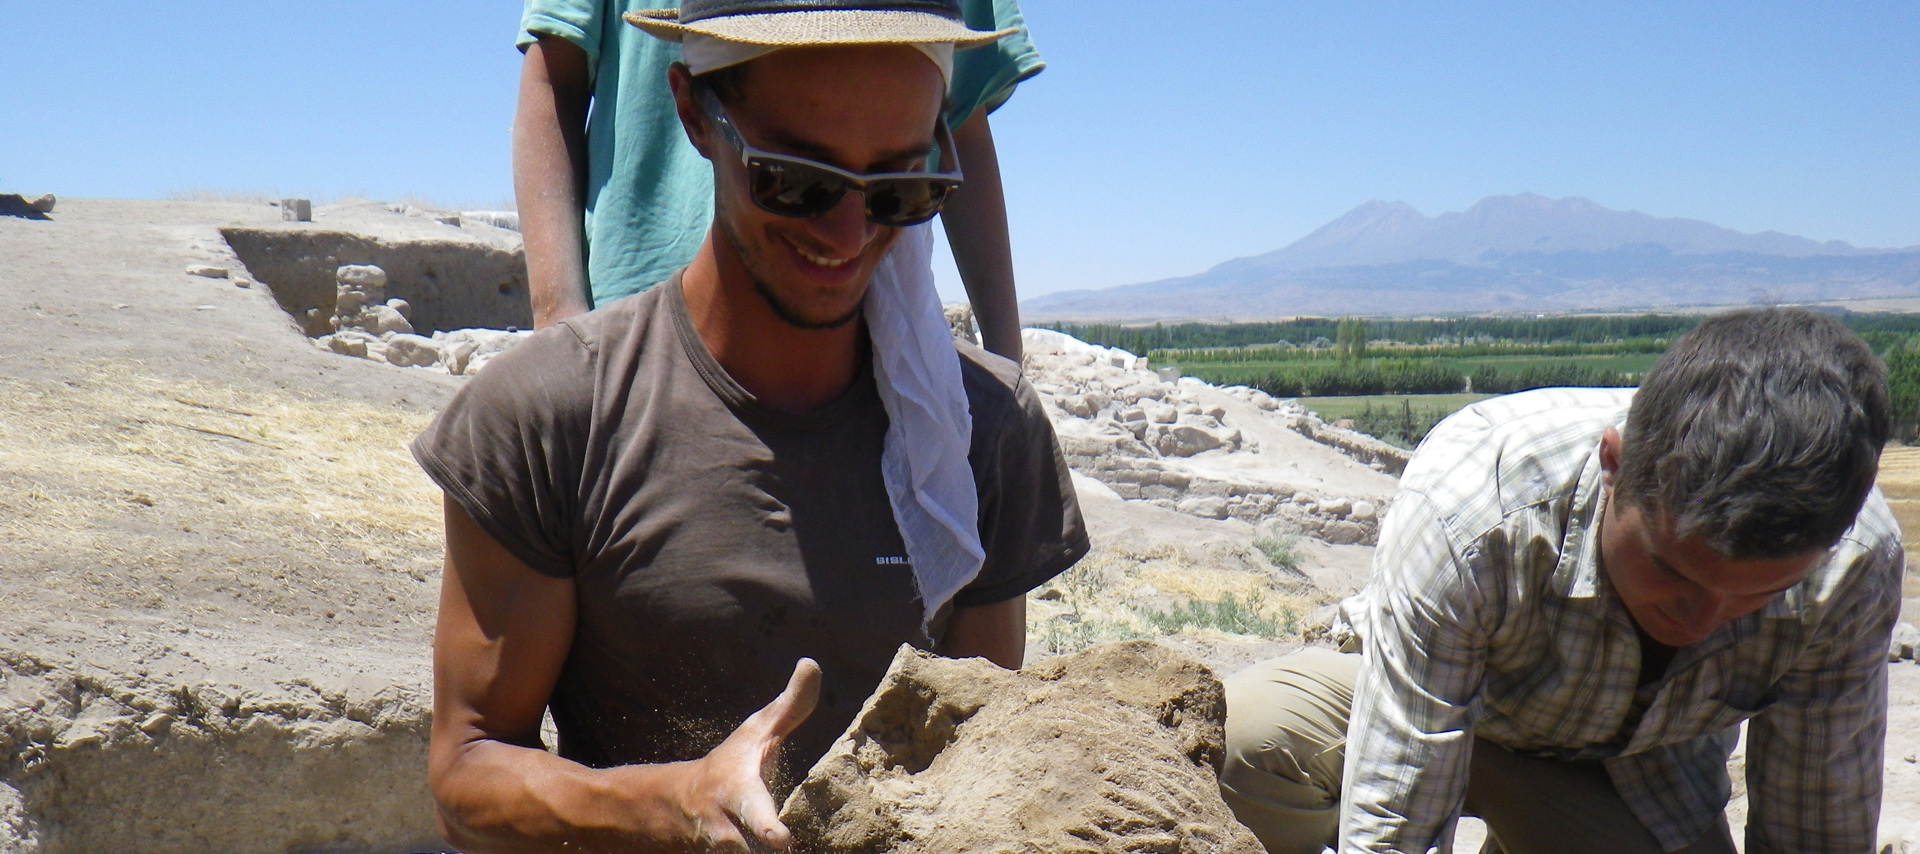 Andrea Trameri at the dig site